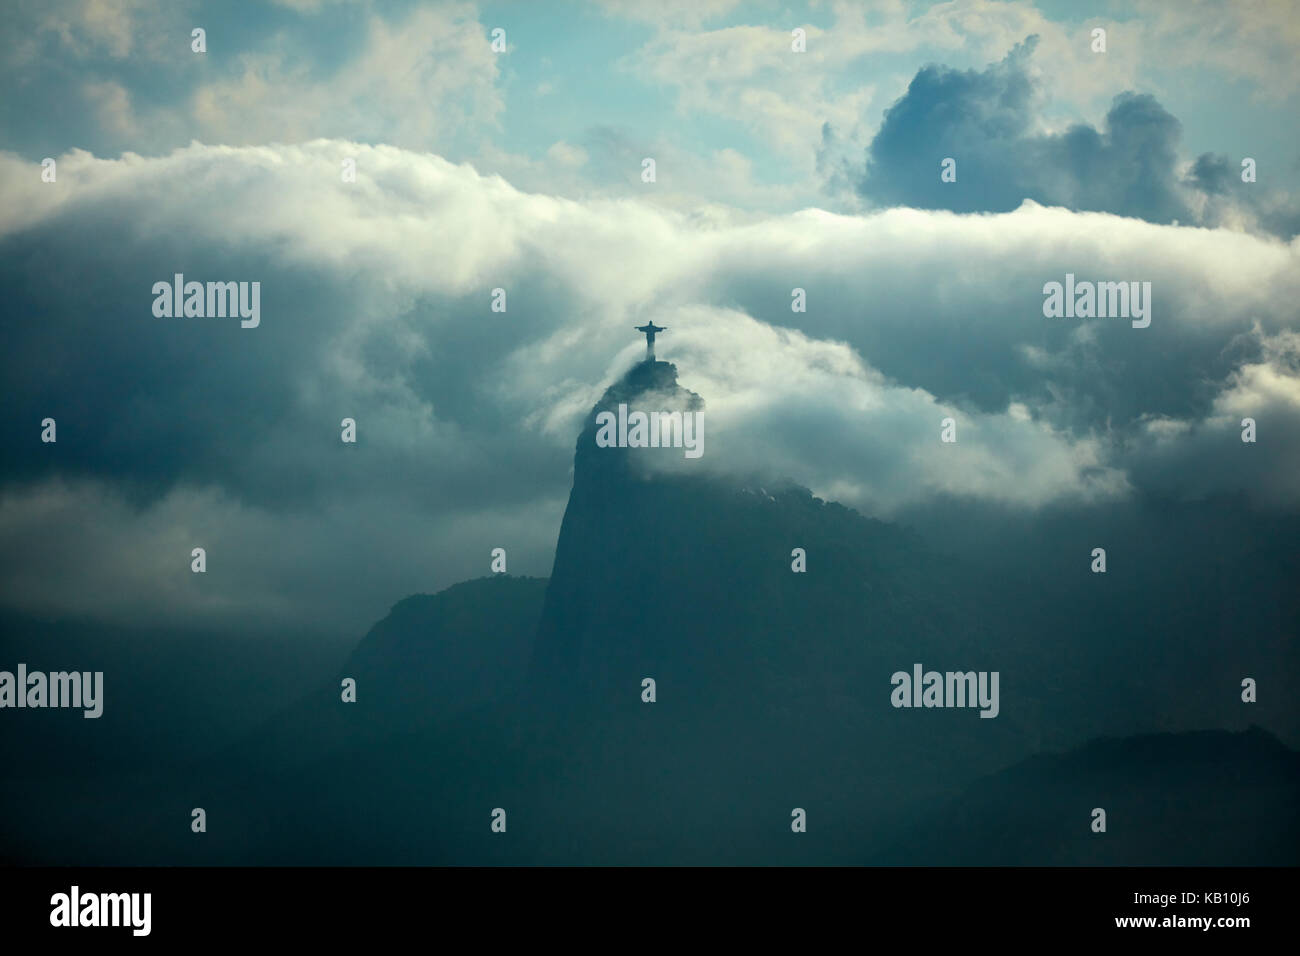 Christ the Redeemer in the clouds atop Corcovado, seen from Niteroi City Park, Niteroi, Rio de Janeiro, Brazil, Stock Photo